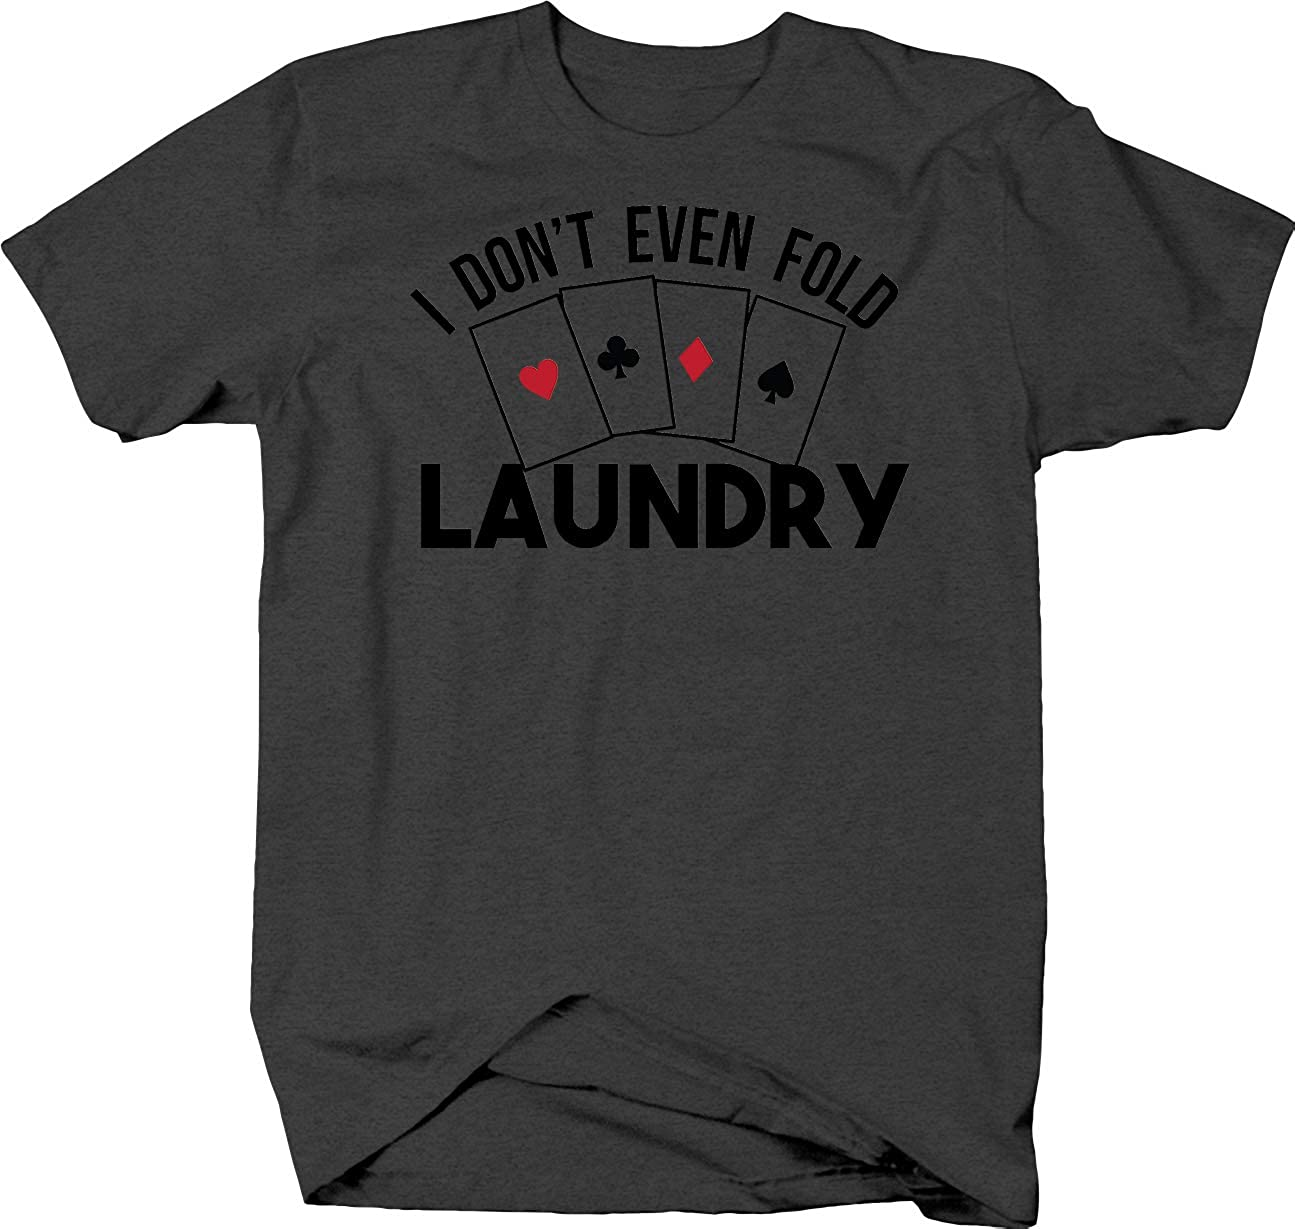 LIFESTYLE SHIRTS & GRAPHIX I Don't Even fold Laundry Card Suits caps Funny Poker Bet Gamble T Shirt for Men